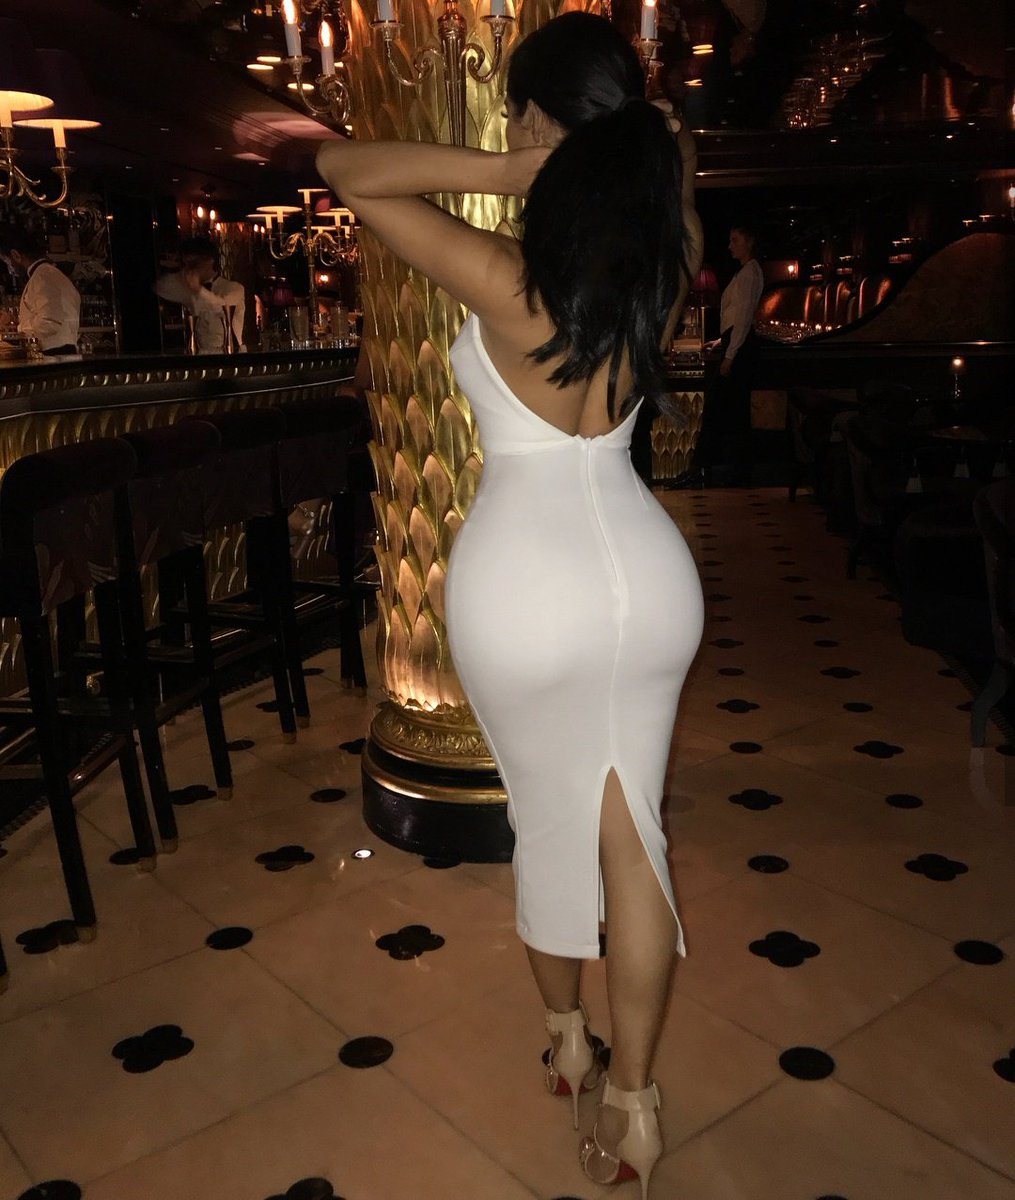 Dioni Tabbers Sideboob. 2018-2019 celebrityes photos leaks! new pics